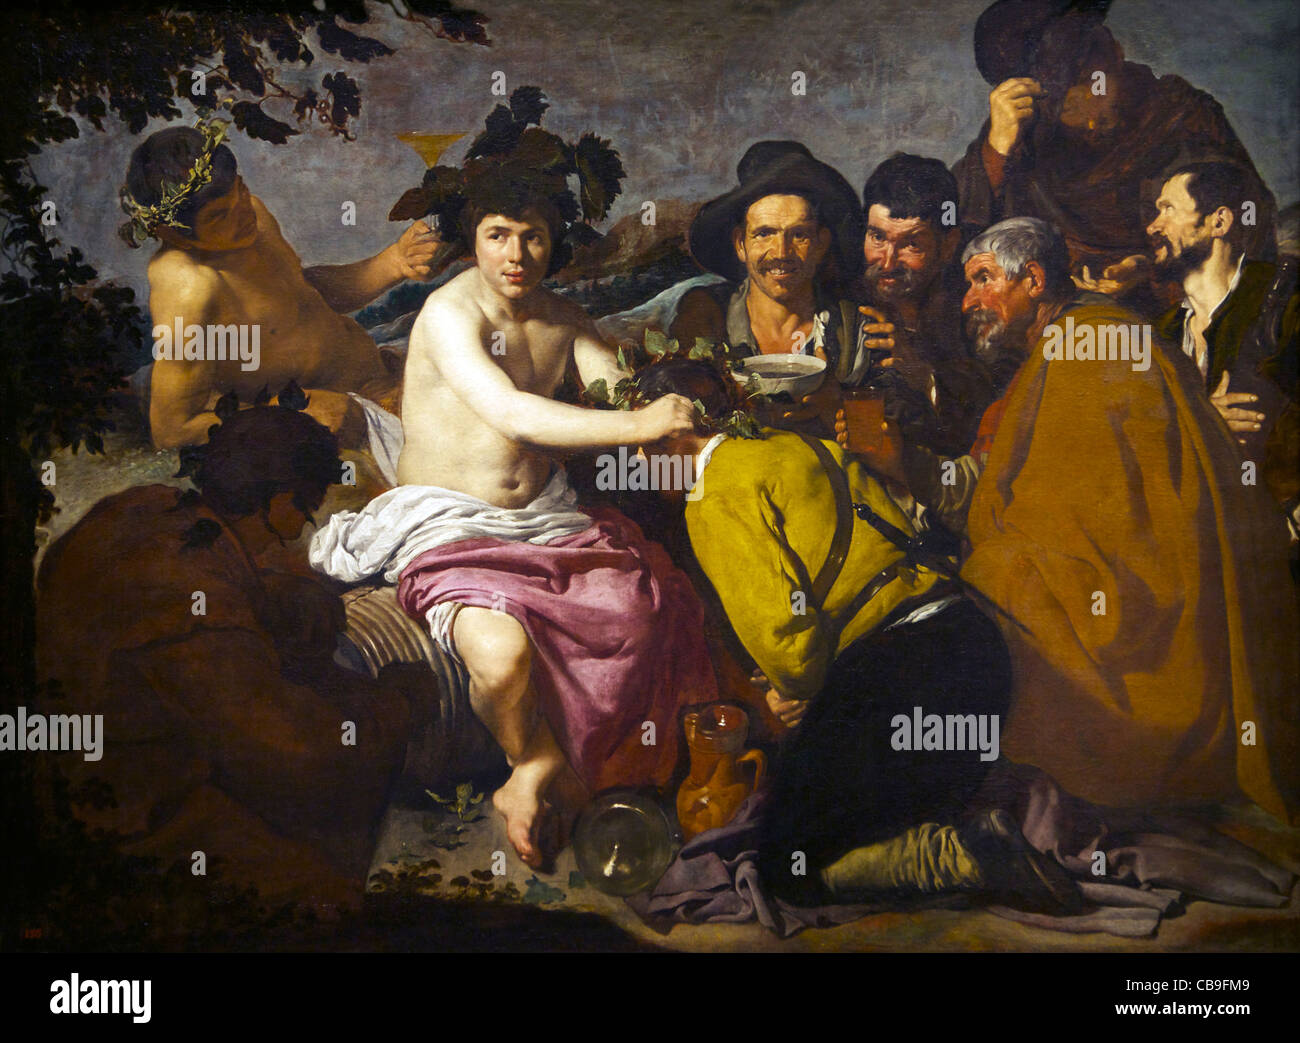 The Drinkers, or, The Feast of Bacchus, Diego Velazquez, circa 1629, Museo Nacional del Prado Museum, Madrid, Spain, Stock Photo